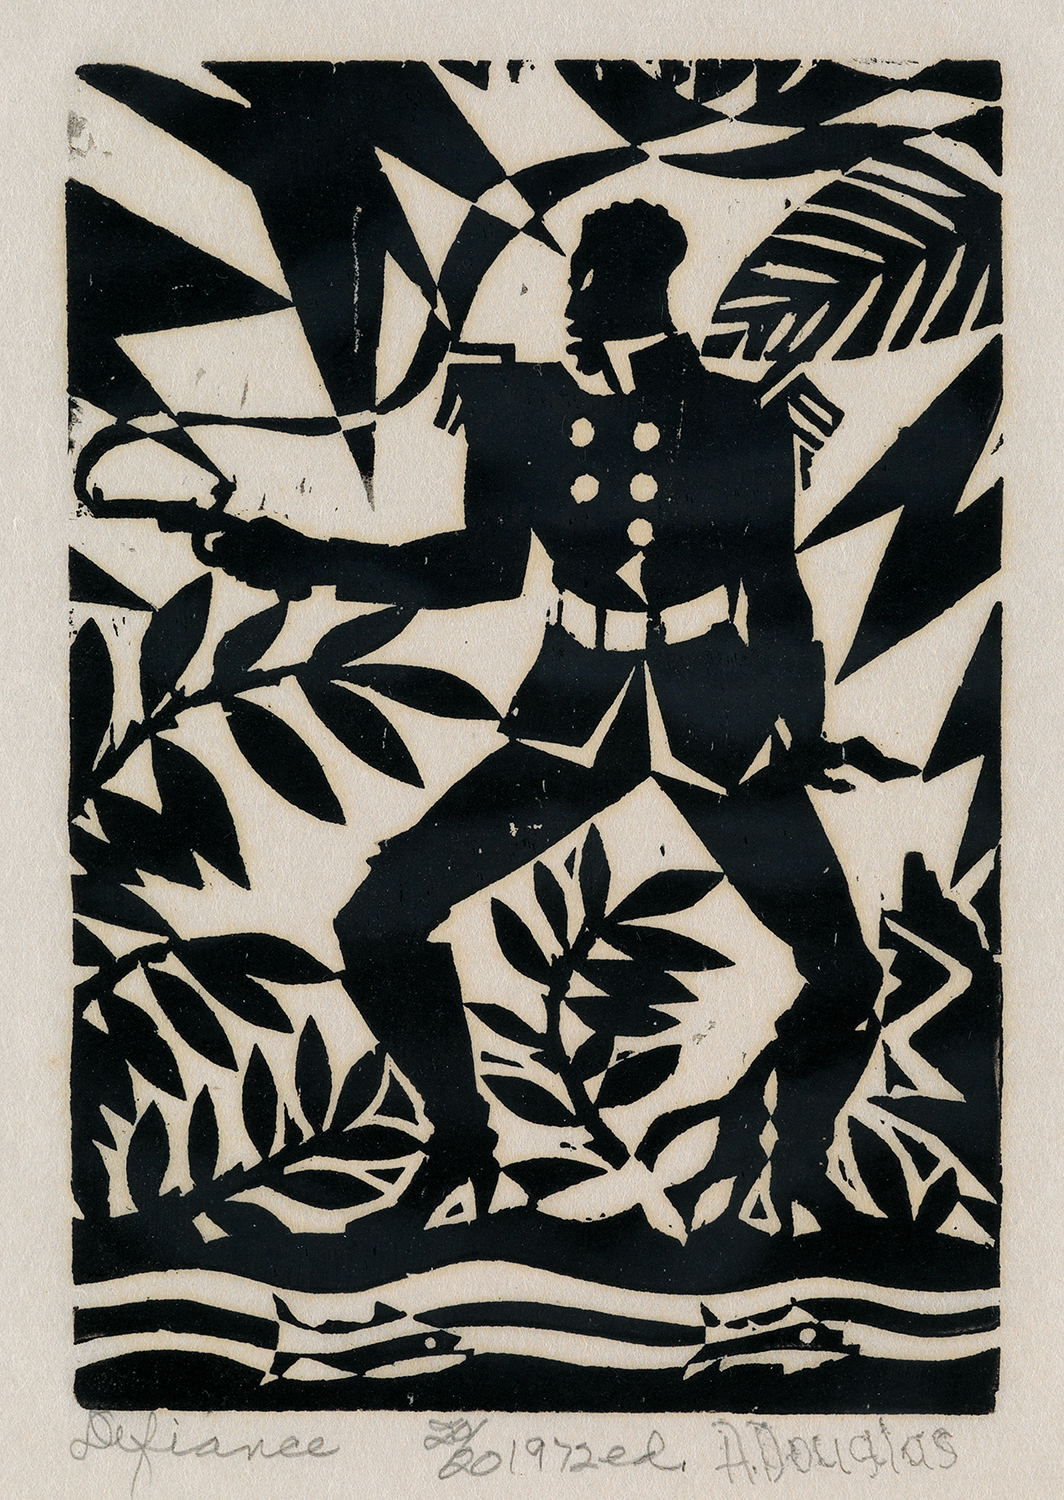 Defiance, one of four prints from the Emperor Jones series by Aaron Douglas. It's from a small group of reprints done with the same wood blocks in 1972, almost 50 years after the originals.